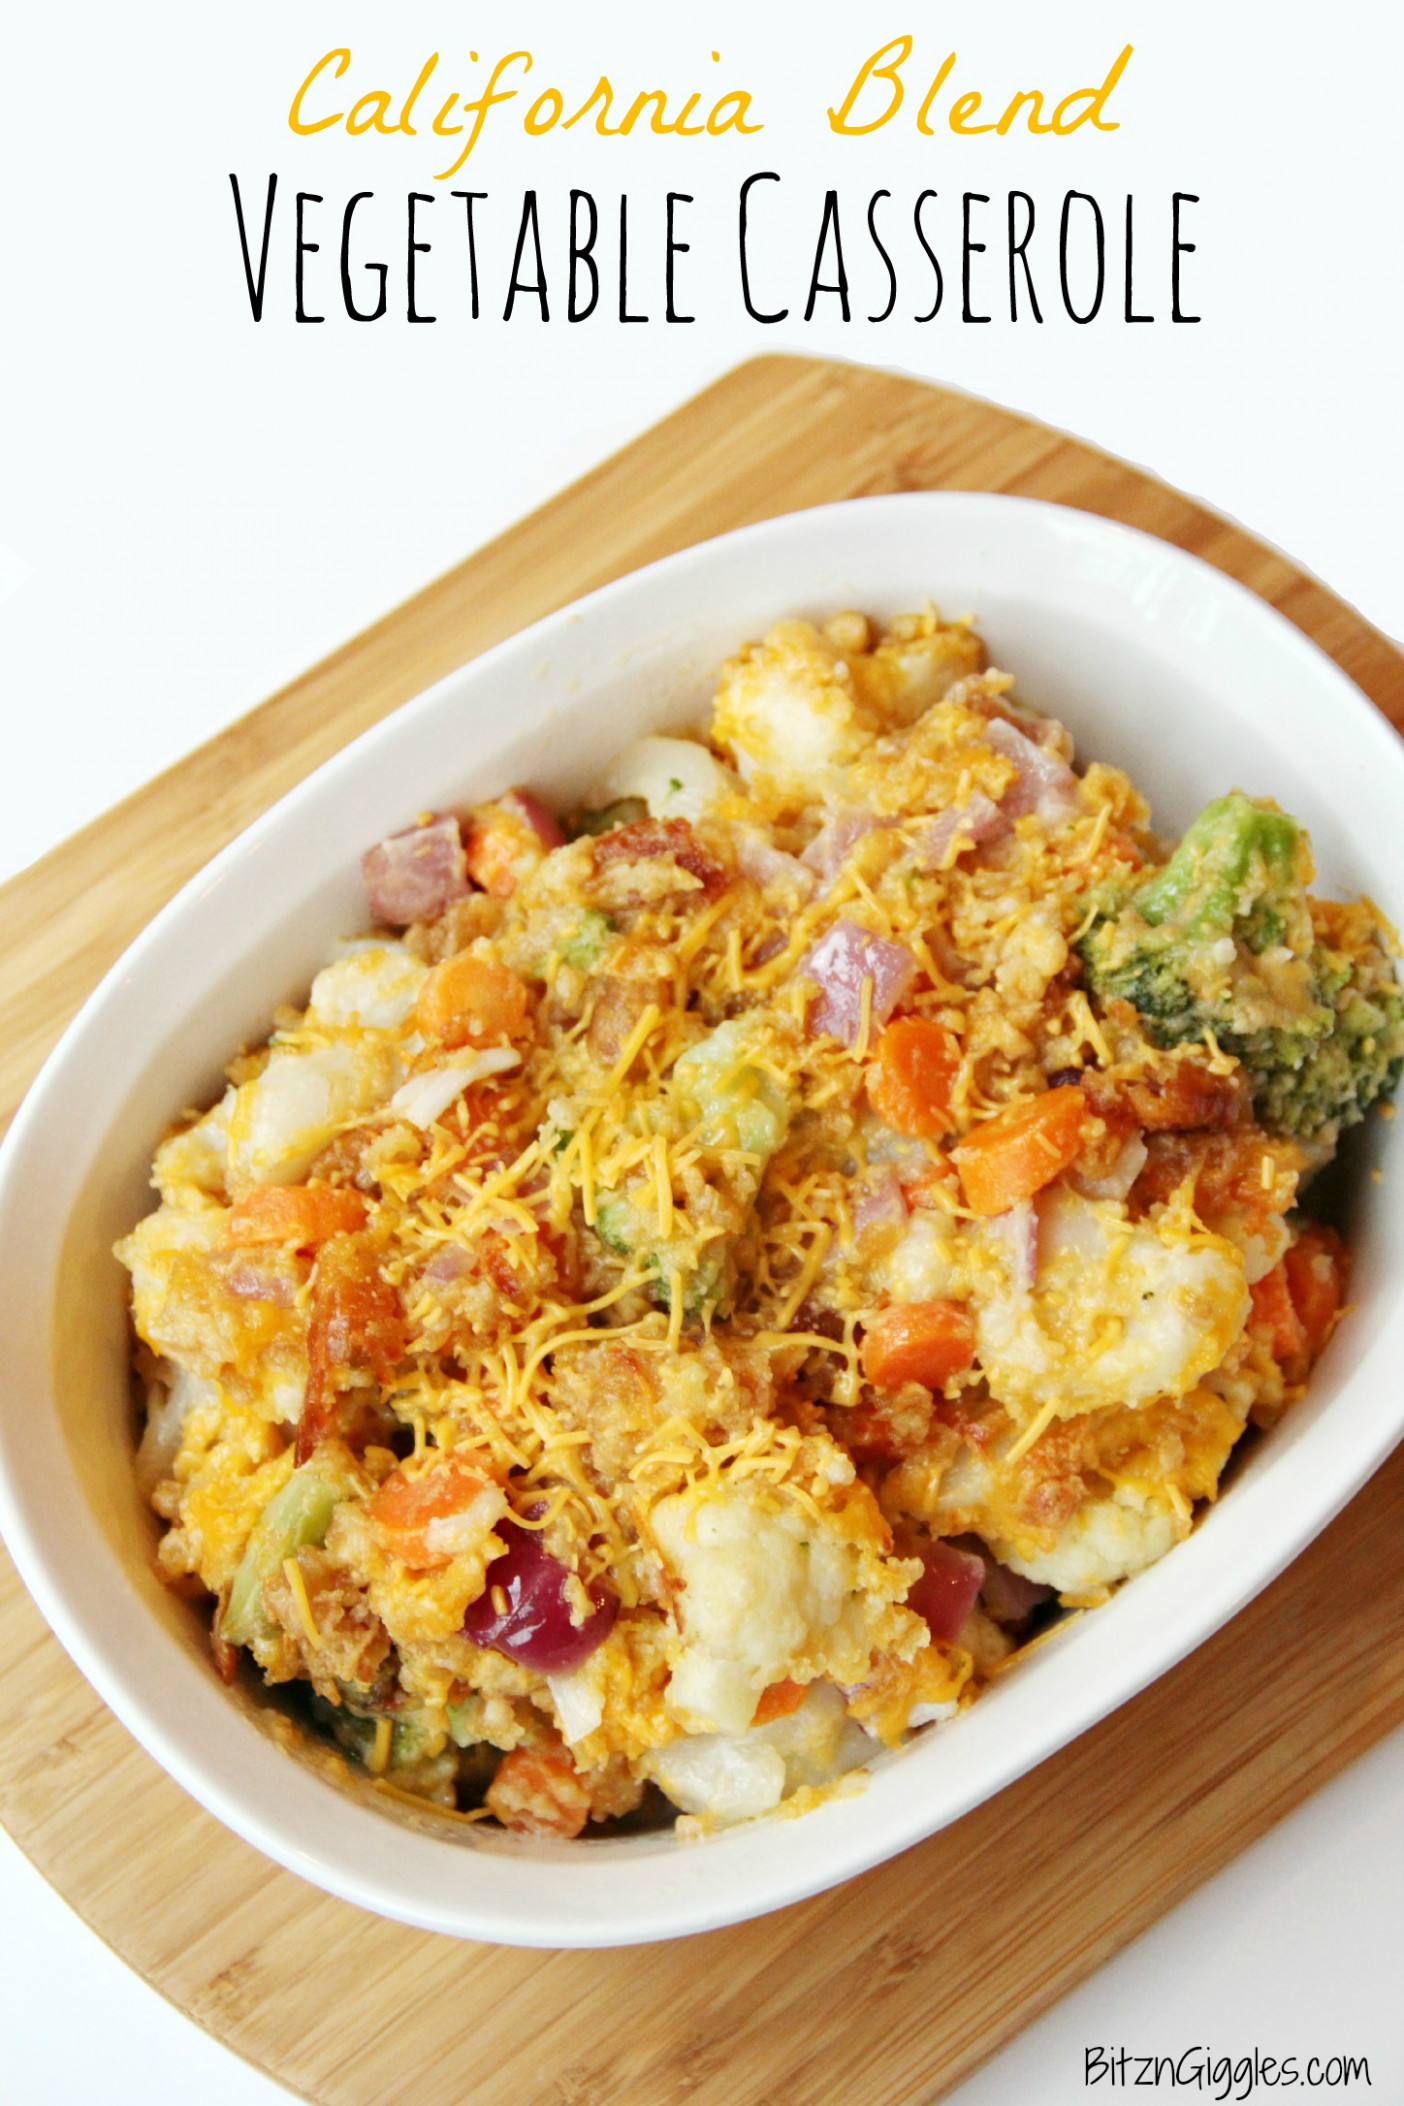 California Blend Vegetable Casserole – Bitz & Giggles